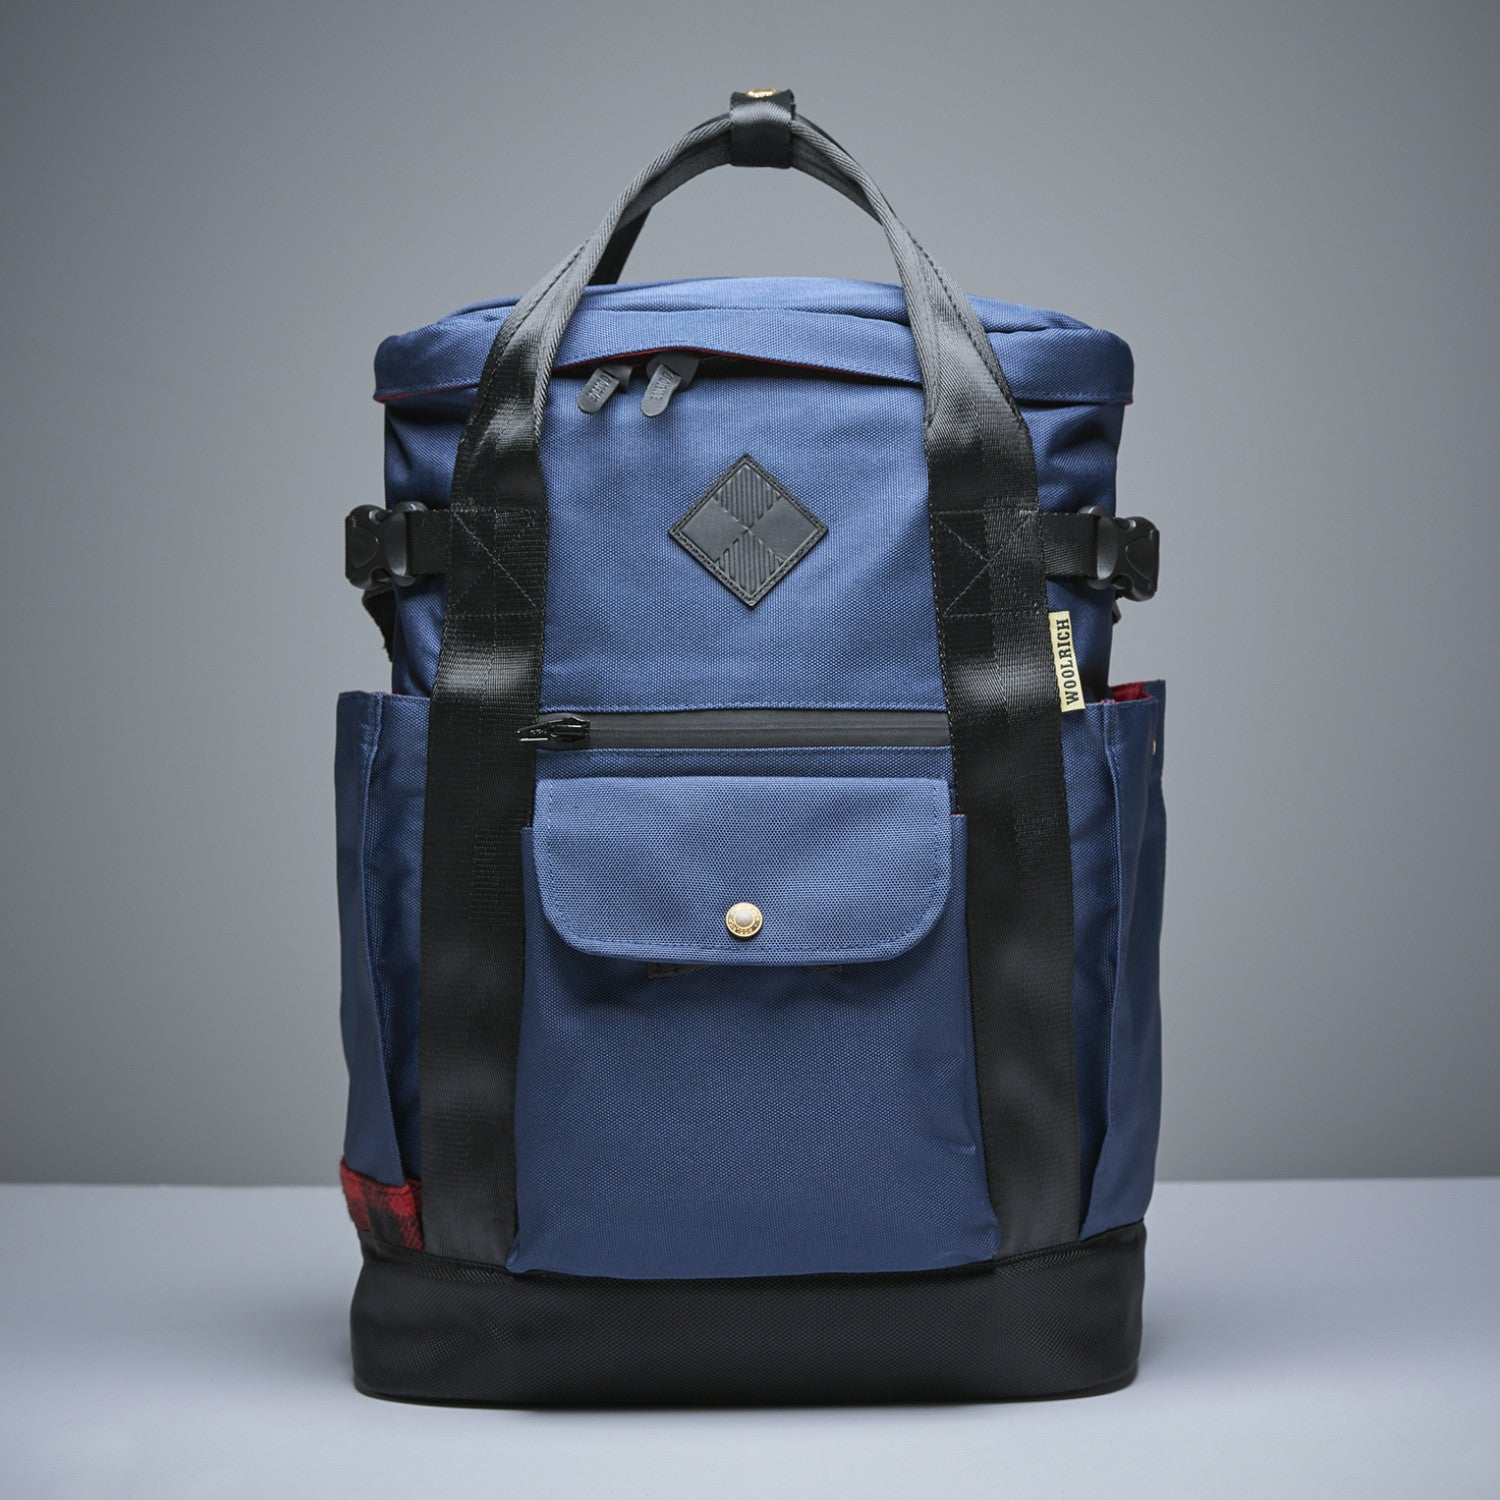 Woolrich - The Hill-Side for Woolrich Backpack, Navy -